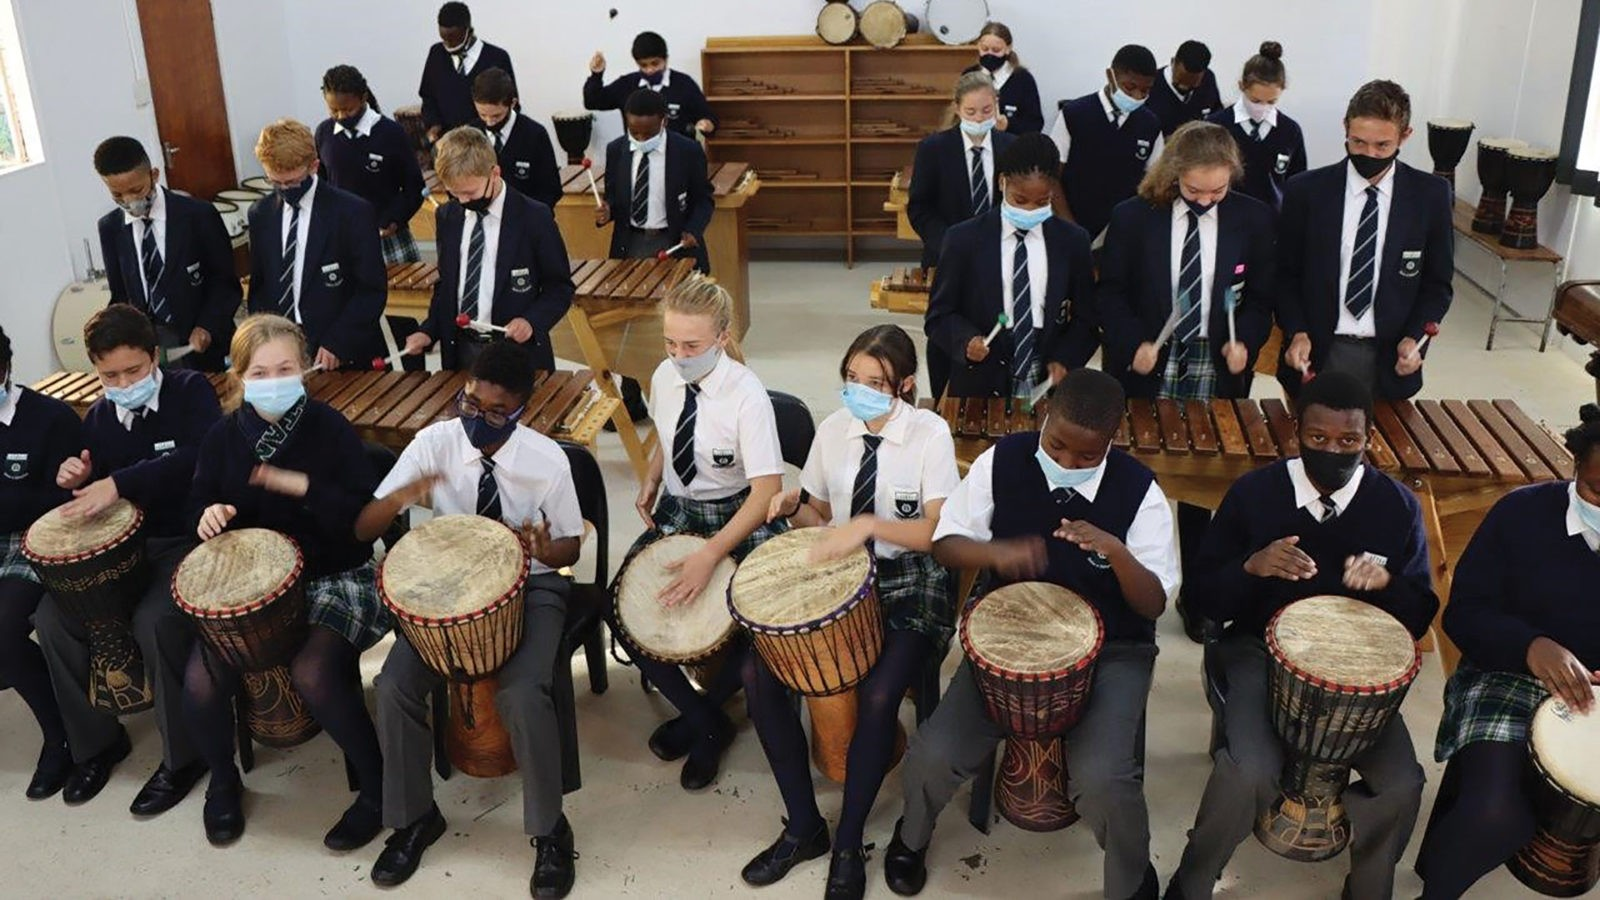 Marimbas in the South African classroom